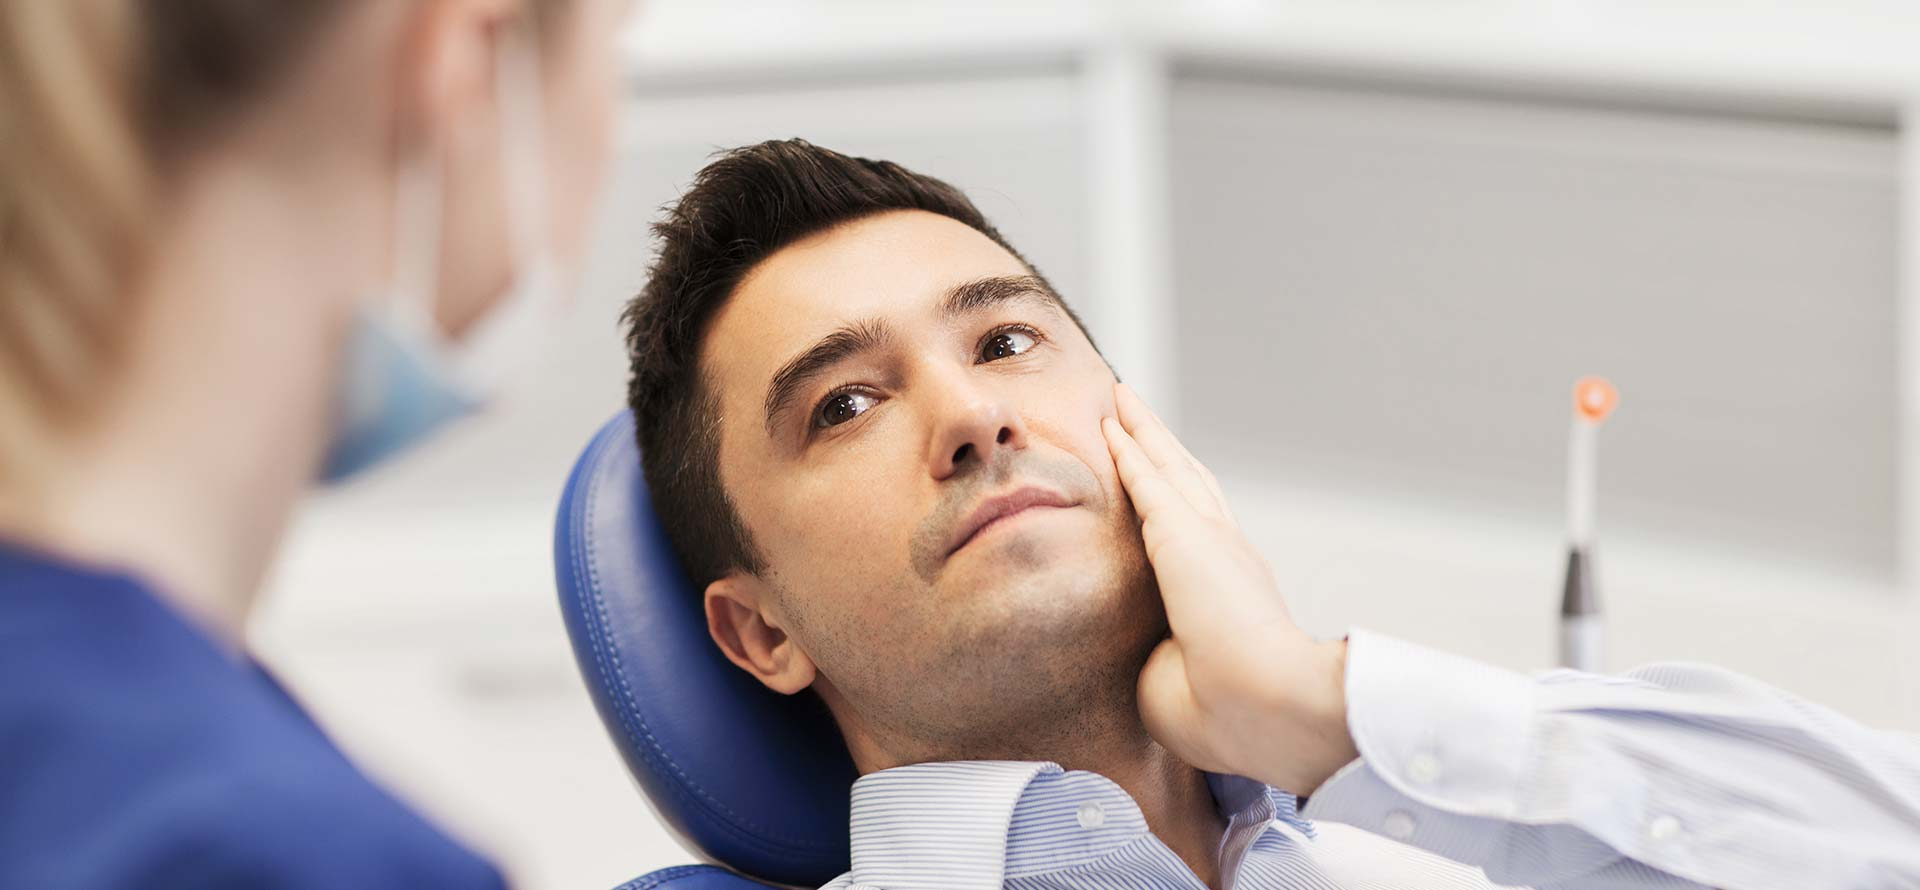 Man with tooth pain sitting on a dental chair.